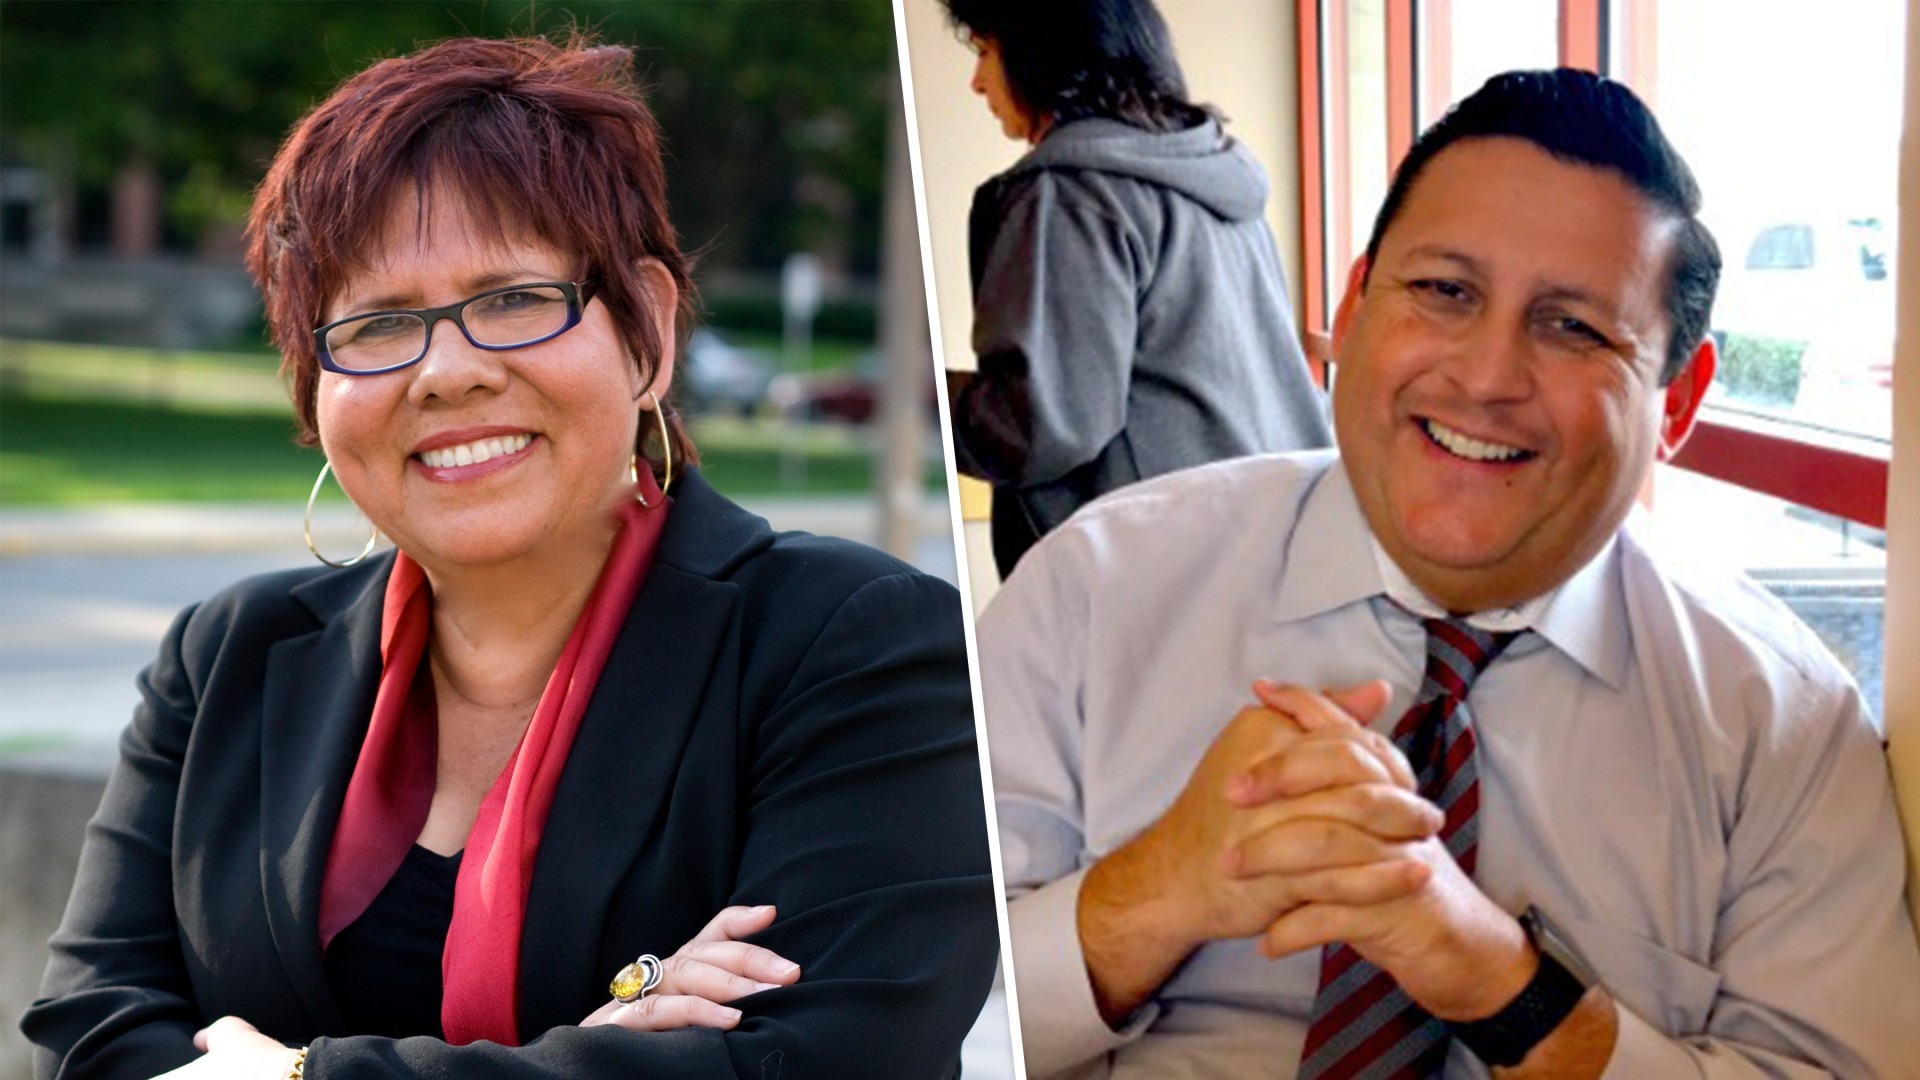 Laura Rendon (left) and Jose Manuel Villarreal spoke at a virtual event for the César Chávez Day of Service last week.